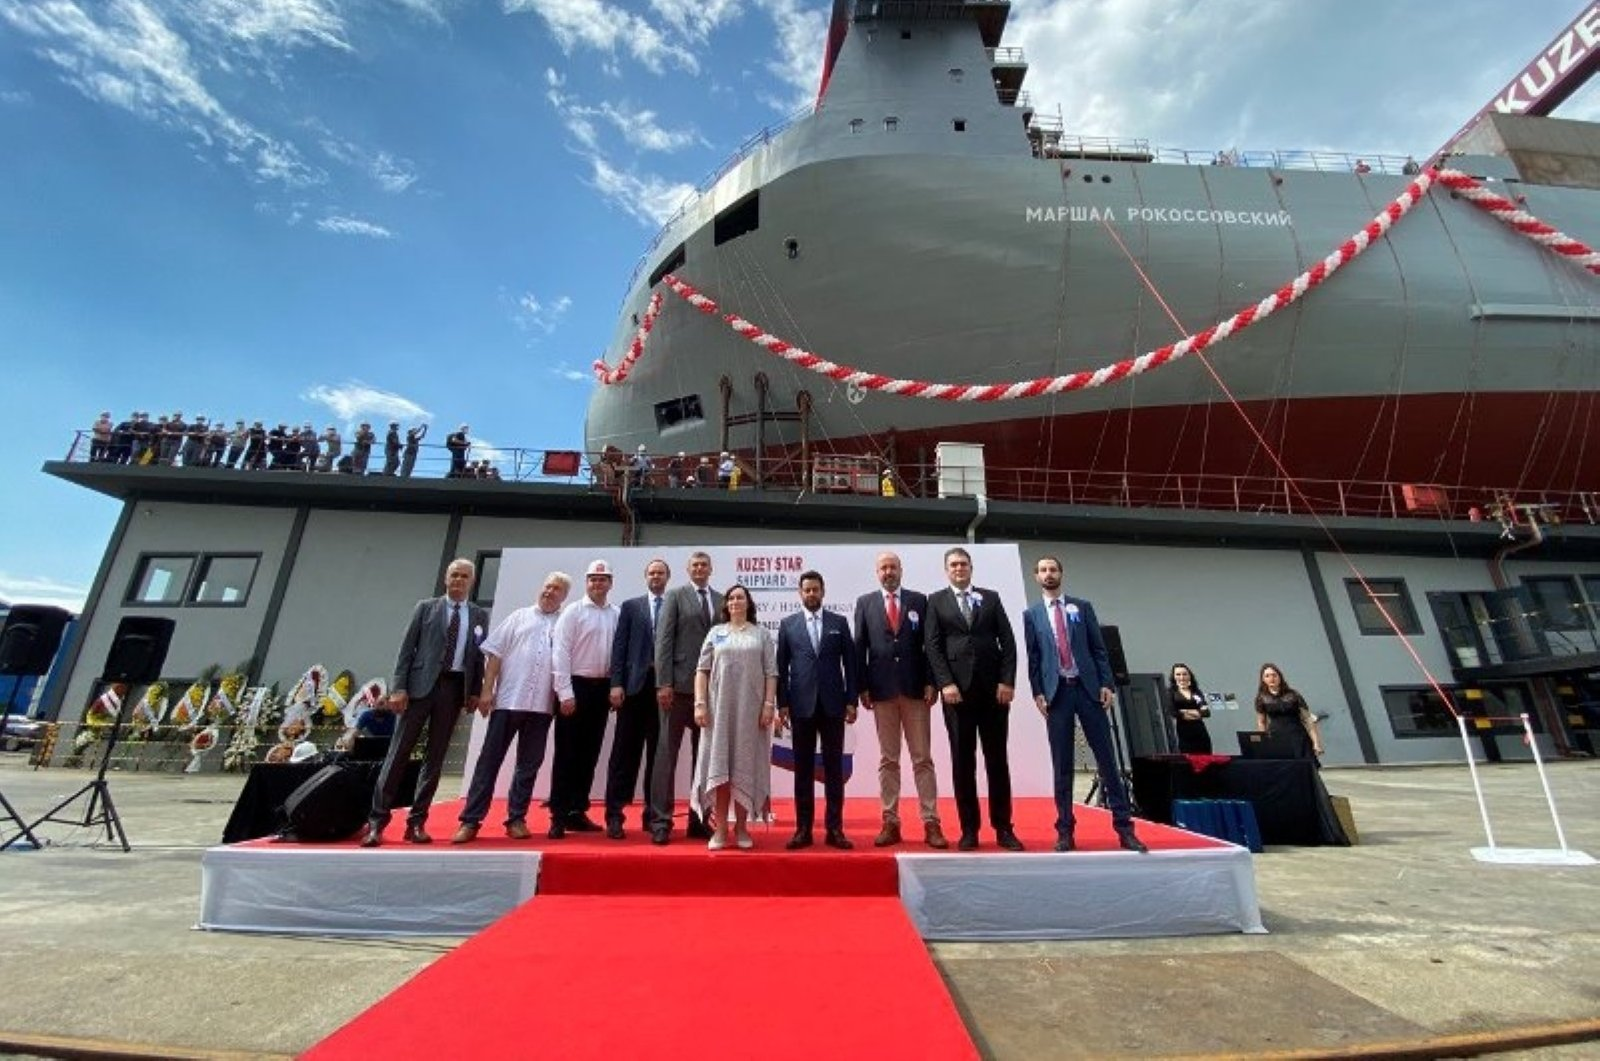 FSUE Rosmorport and Kuzey Star Shipyard officials are seen in front of the Marshal Rokossovsky ferry during its launching ceremony in Tuzla, Istanbul, Turkey, Aug. 21, 2020. (Photo courtesy of FSUE Rosmorport)